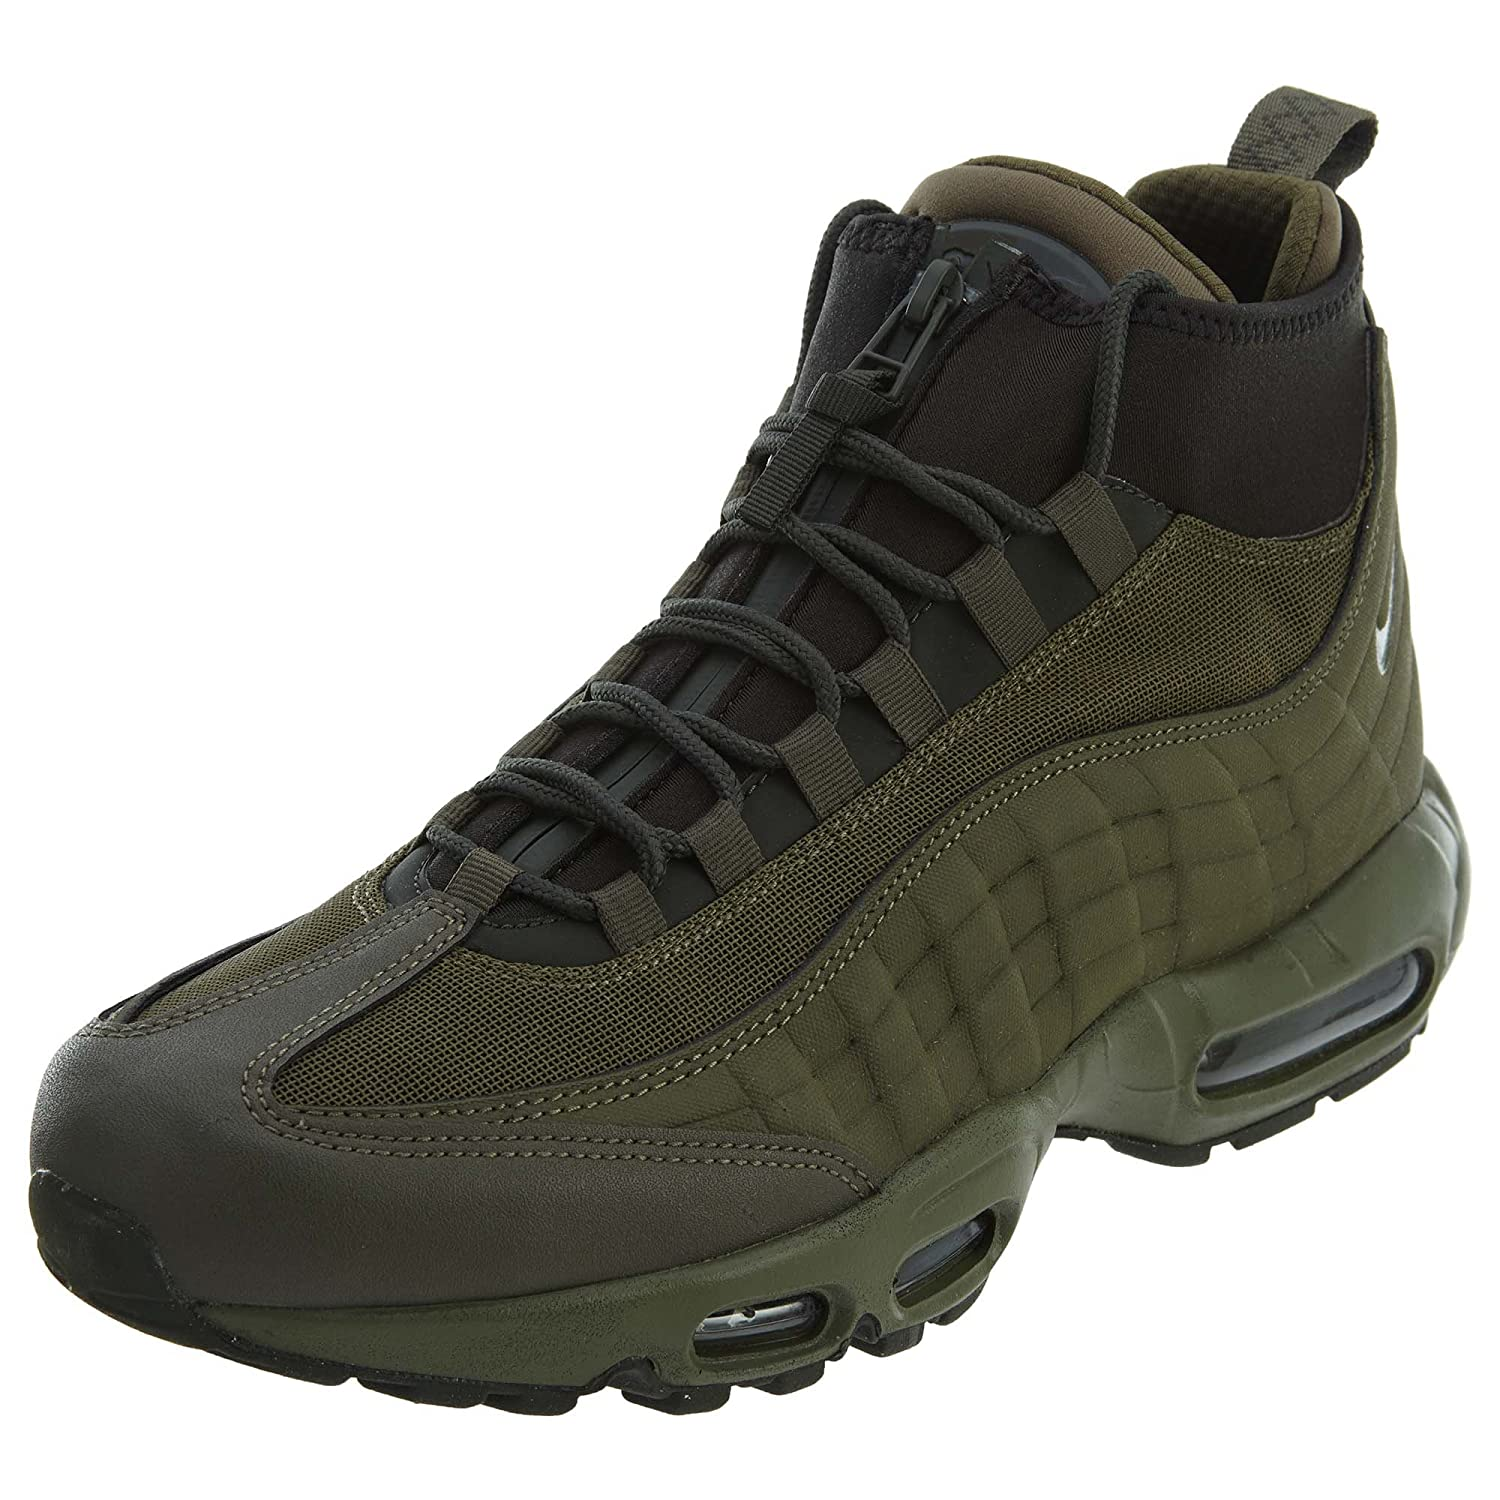 b3520ca6fce0ce Nike Air Max 95 Sneakerboot 806809-202 Boots Green Mens Trainers Sneaker  Shoes Size  EU 42.5 US 9  Amazon.co.uk  Shoes   Bags